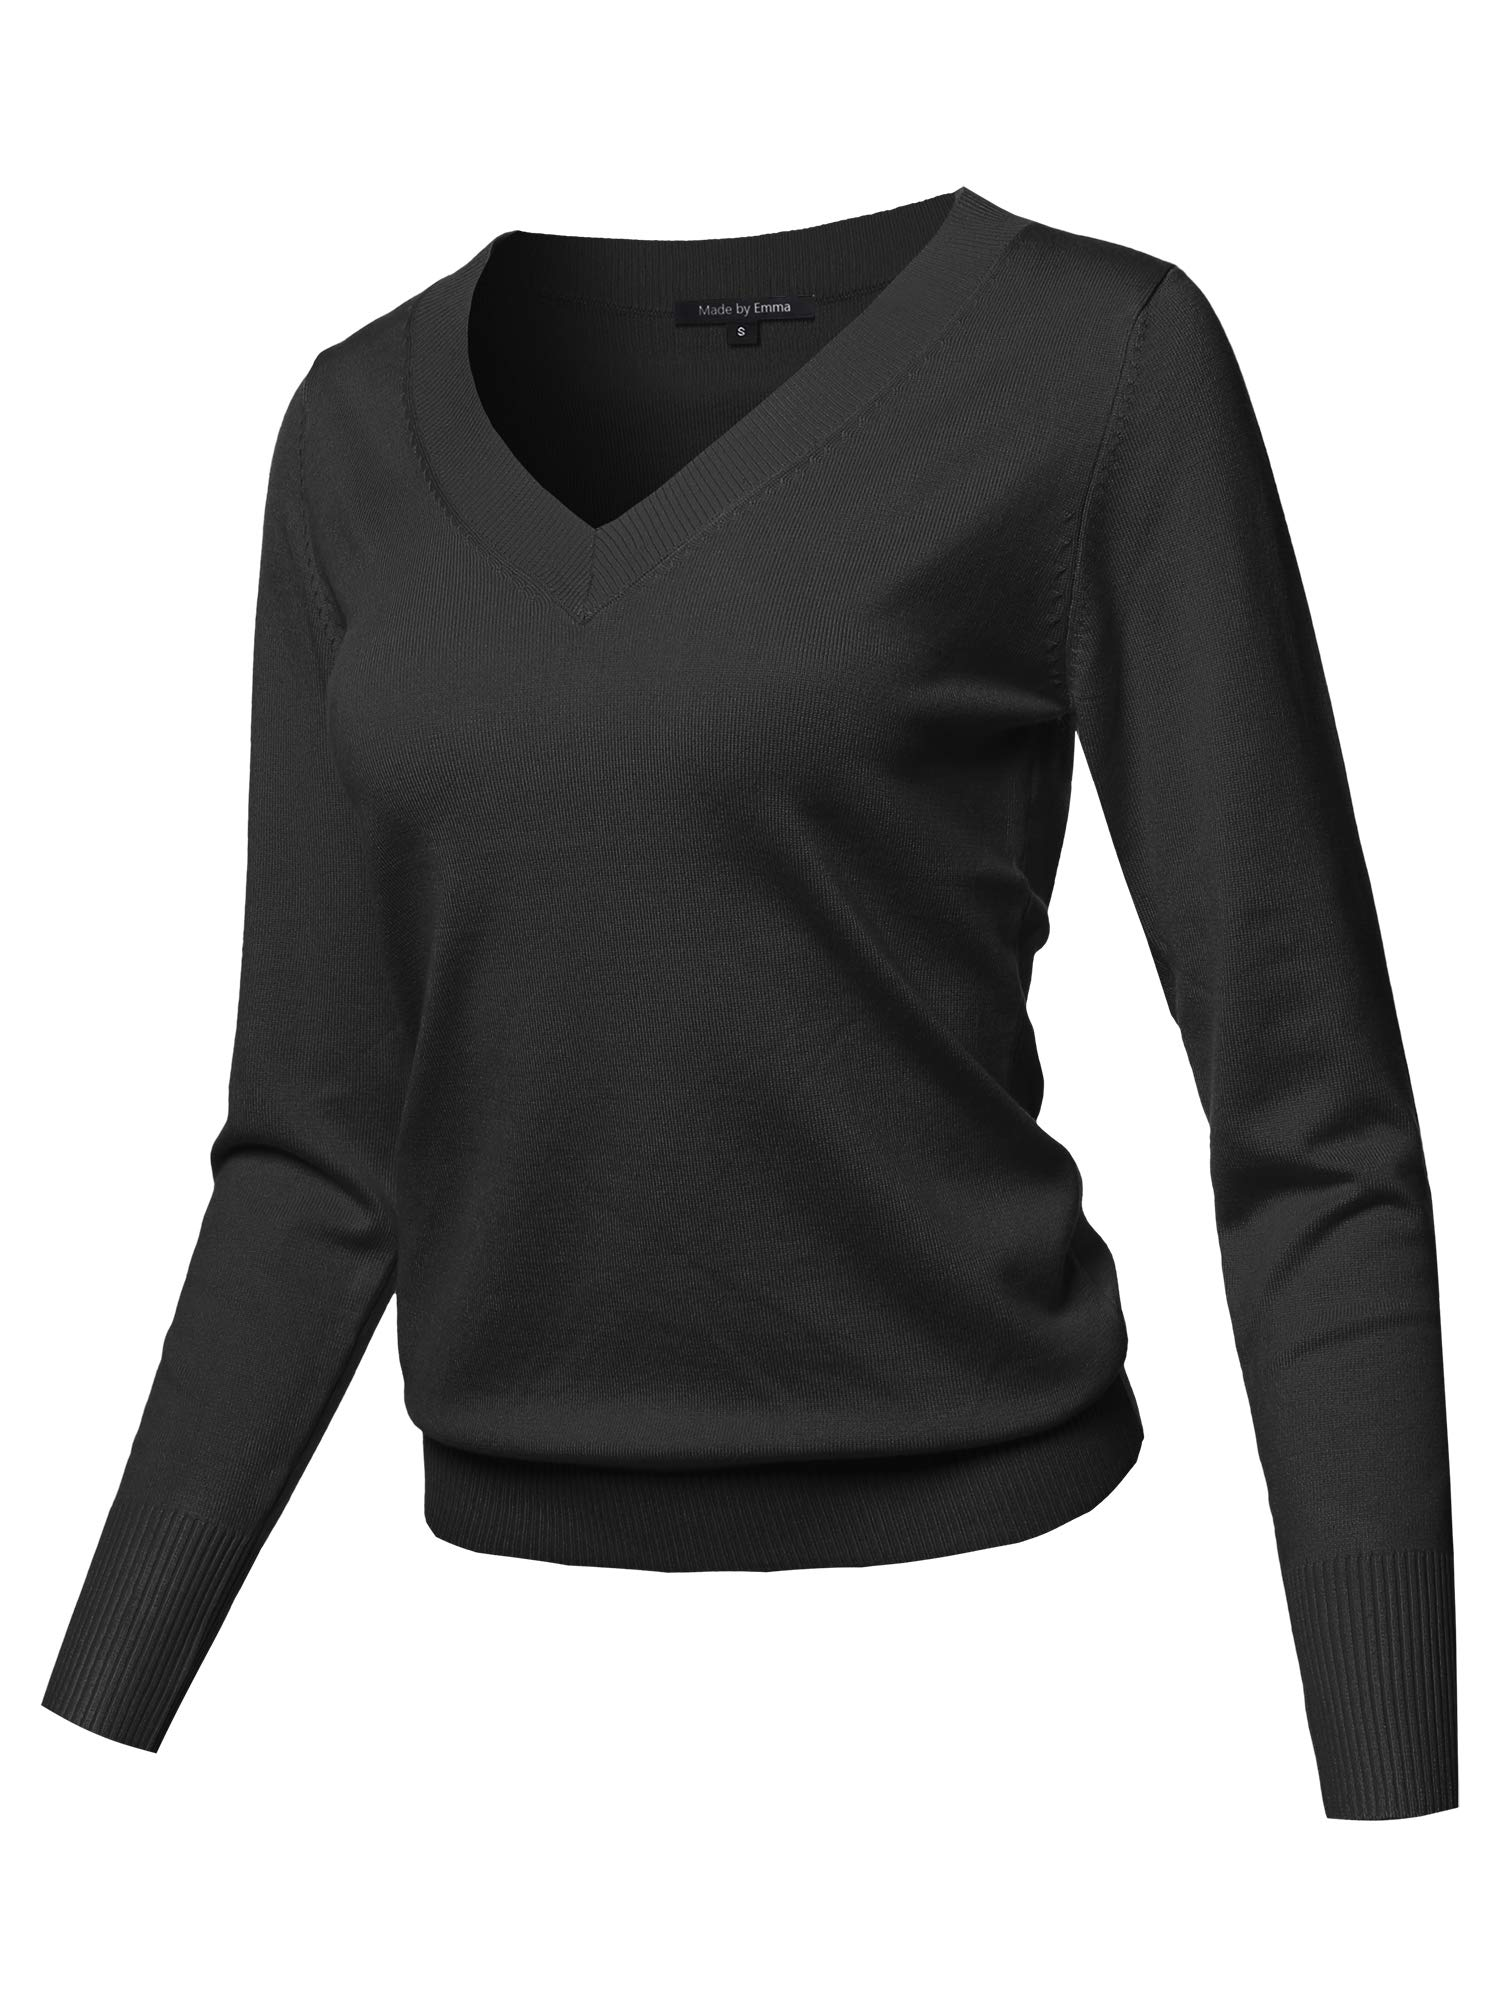 Casual Premium Quality Thick Neck Line Pullover V-Neck Sweater Top Black L